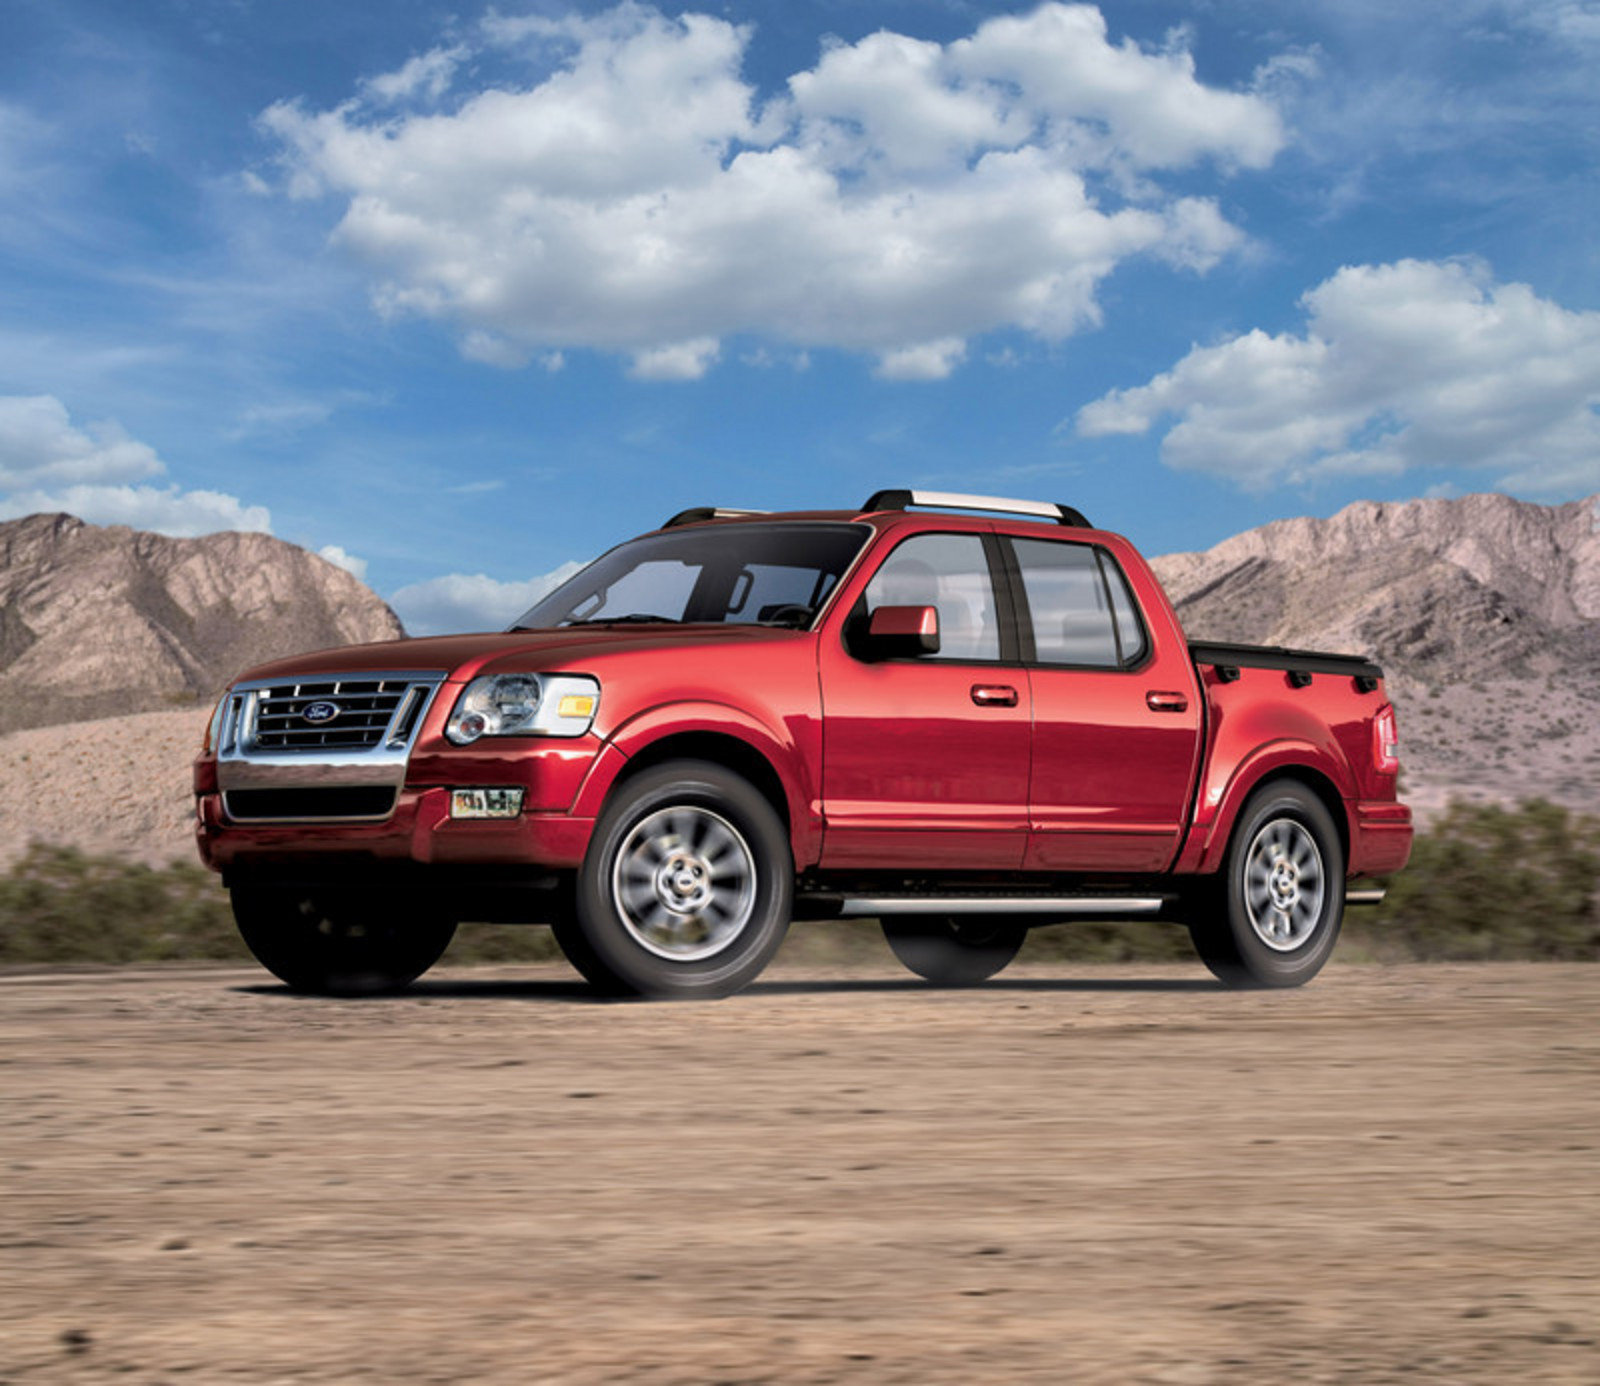 2006 Ford Explorer Sport Trac Review